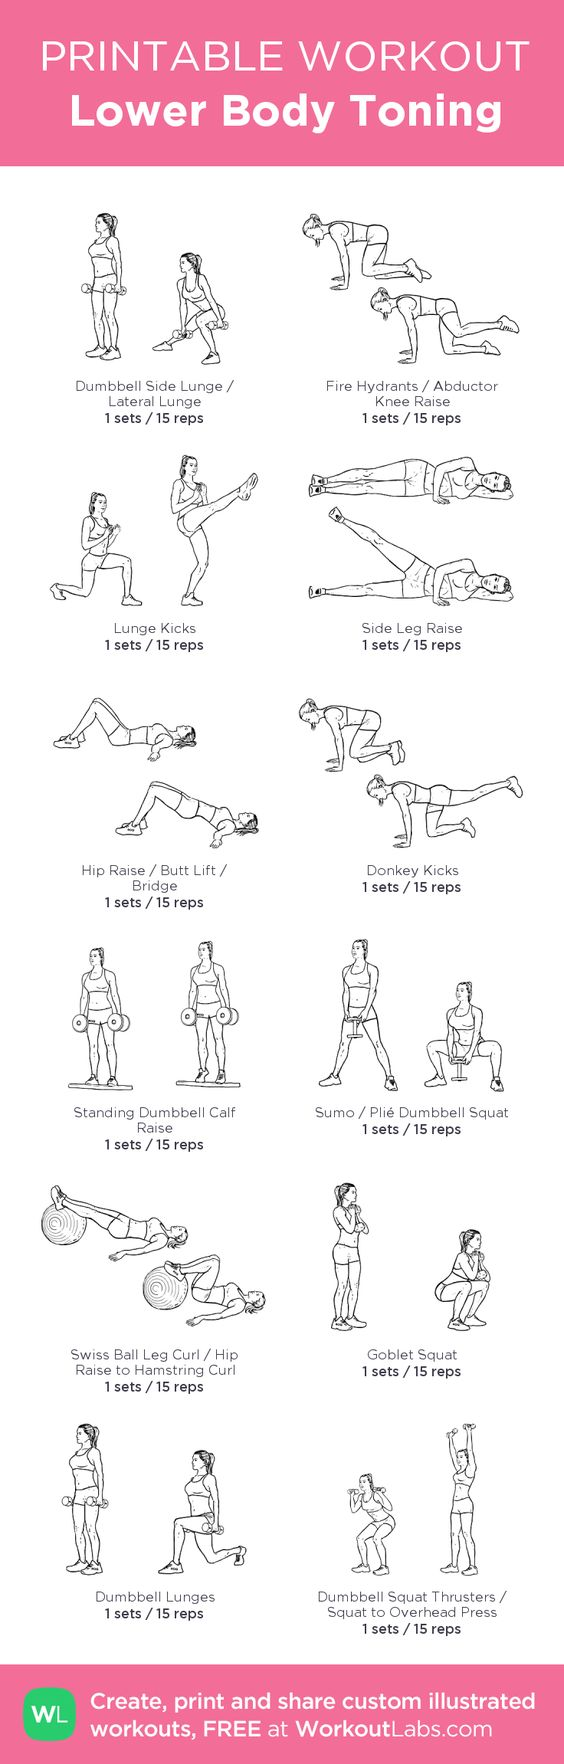 Lower Body Toning –my custom workout created at WorkoutLabs.com • Click through to download as printable PDF! #customworkout